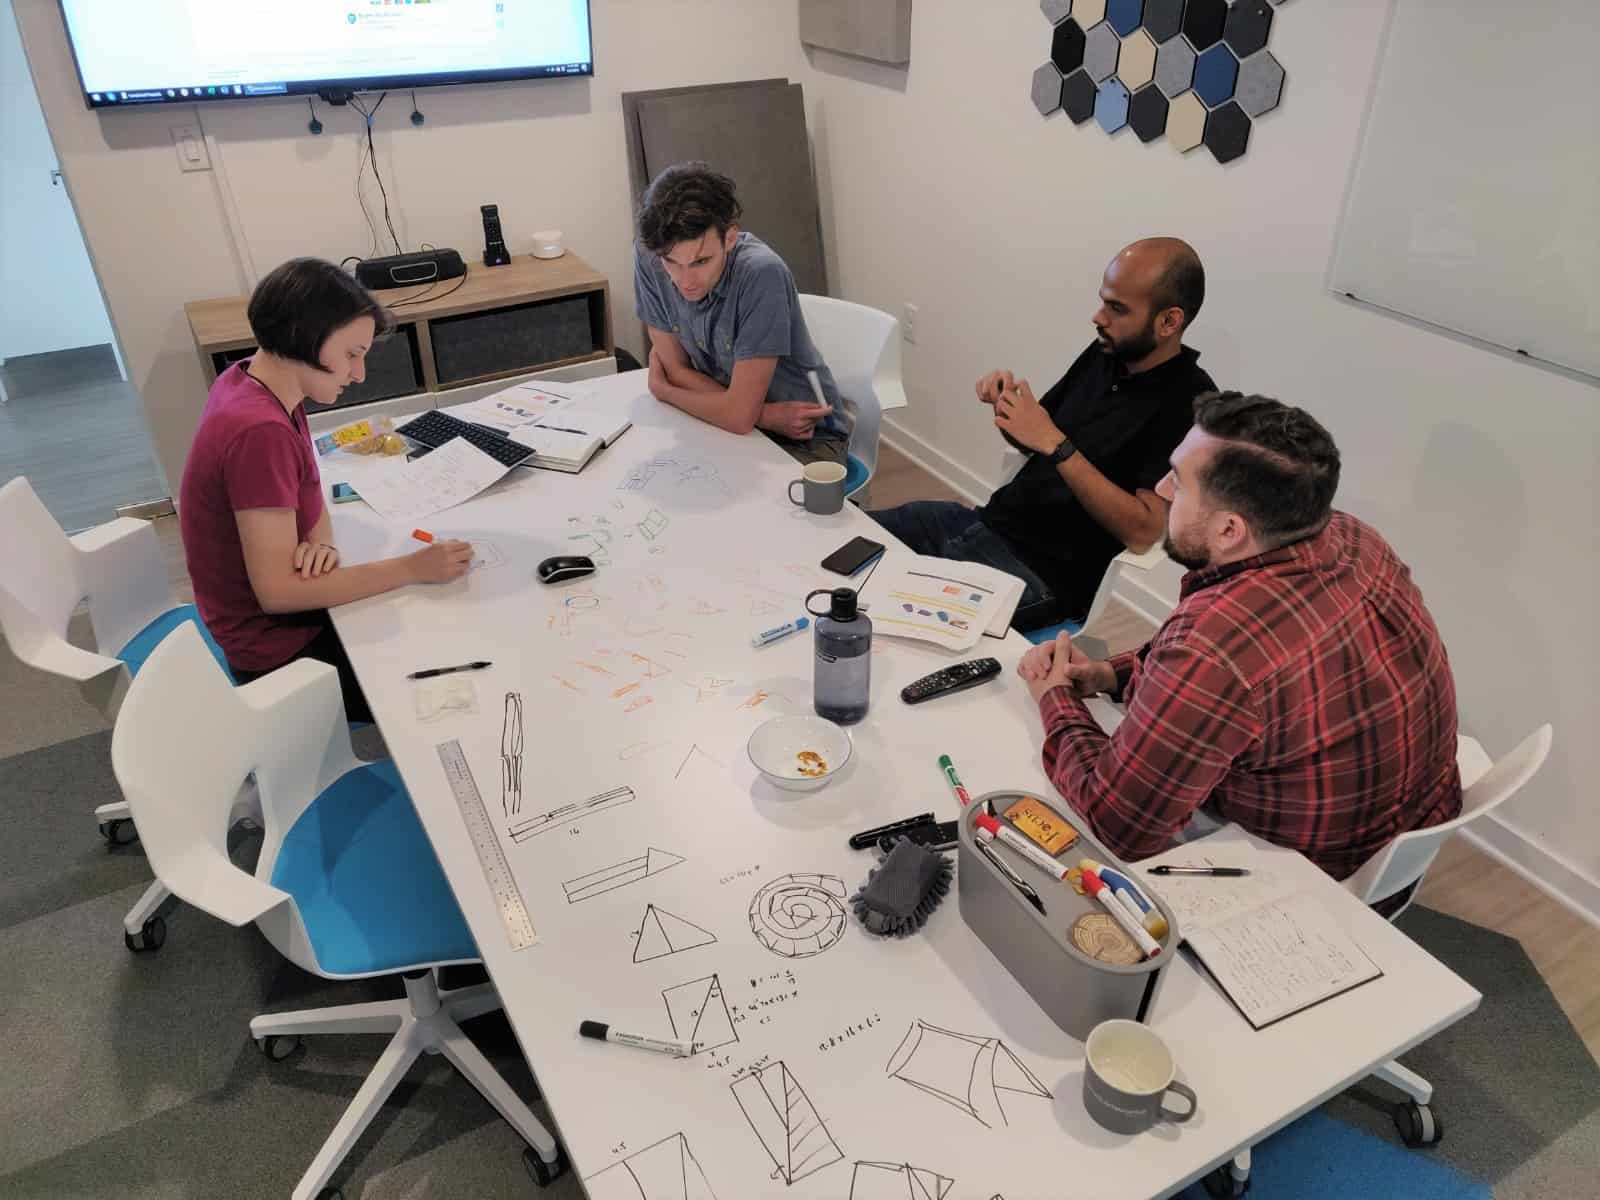 The Produktworks team during a brainstorming session